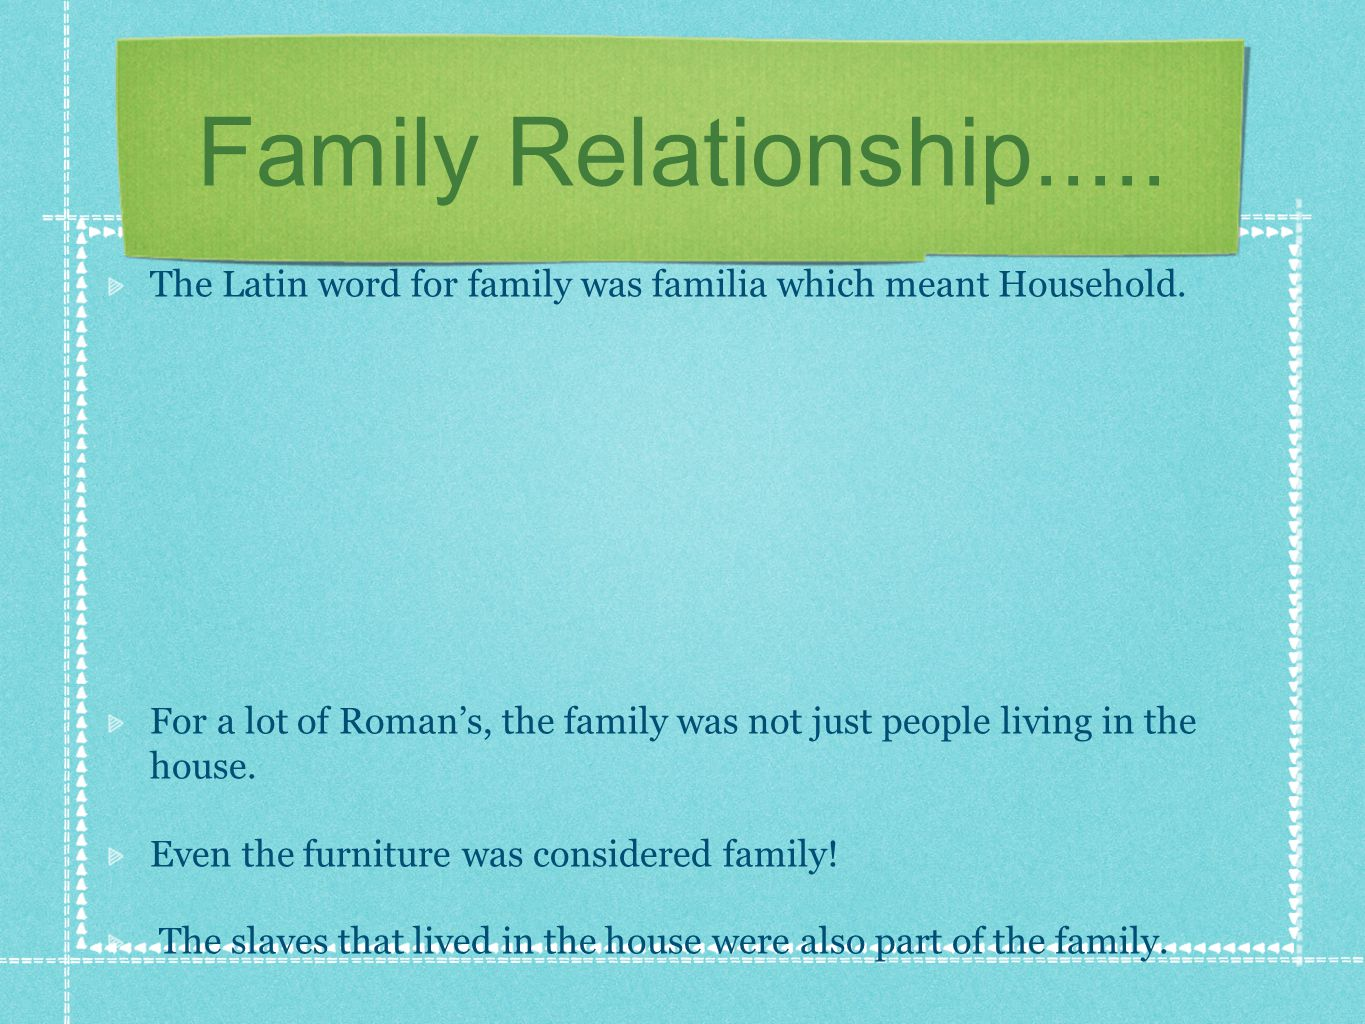 Family Relationship..... The Latin word for family was familia which meant Household.